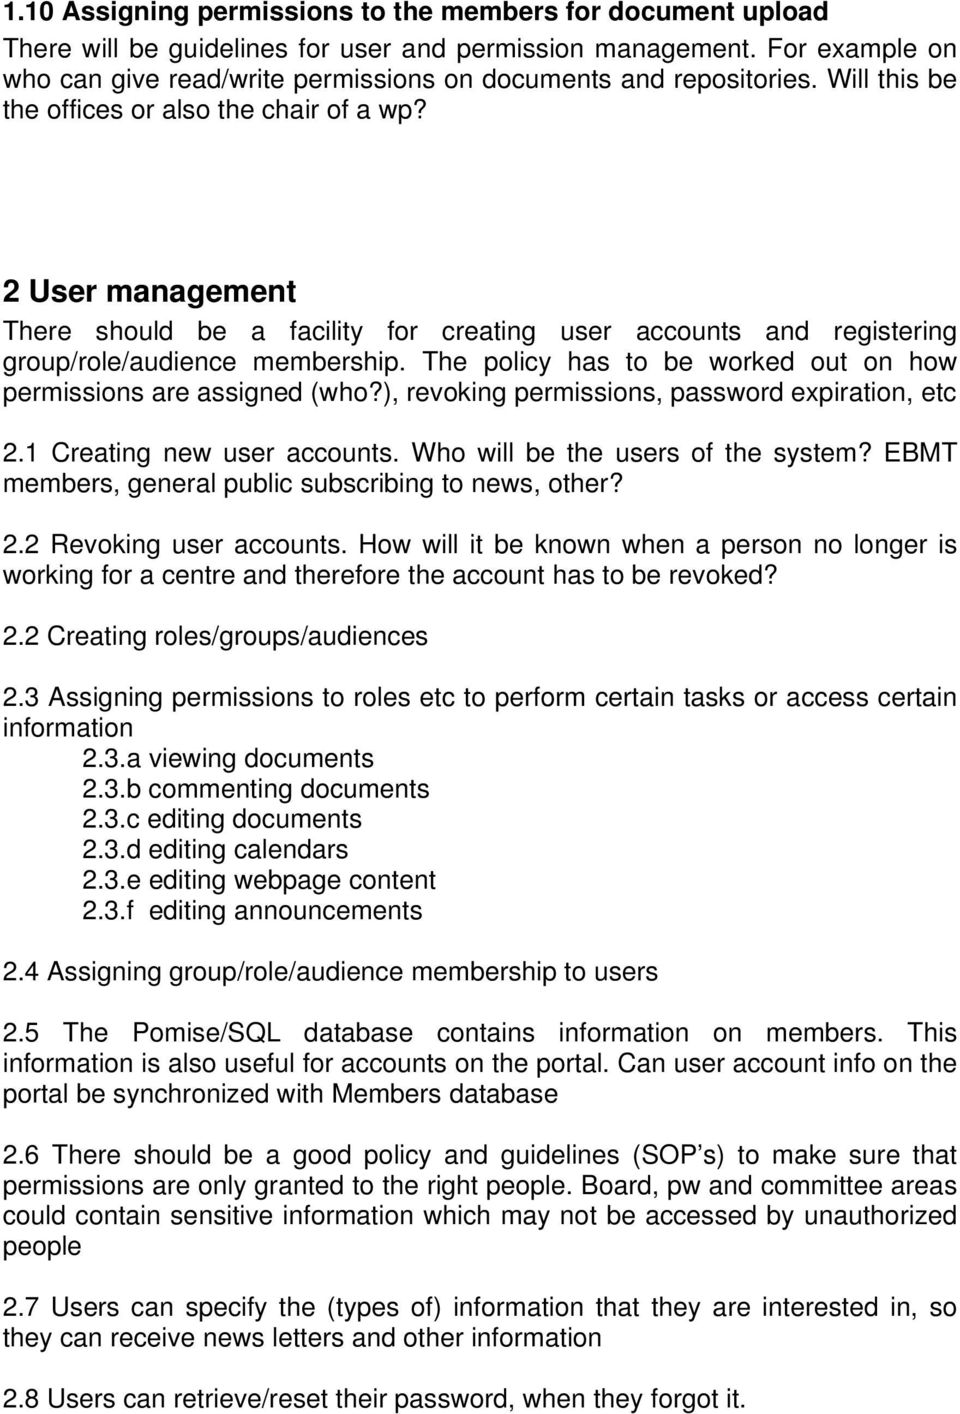 2 User management There should be a facility for creating user accounts and registering group/role/audience membership. The policy has to be worked out on how permissions are assigned (who?